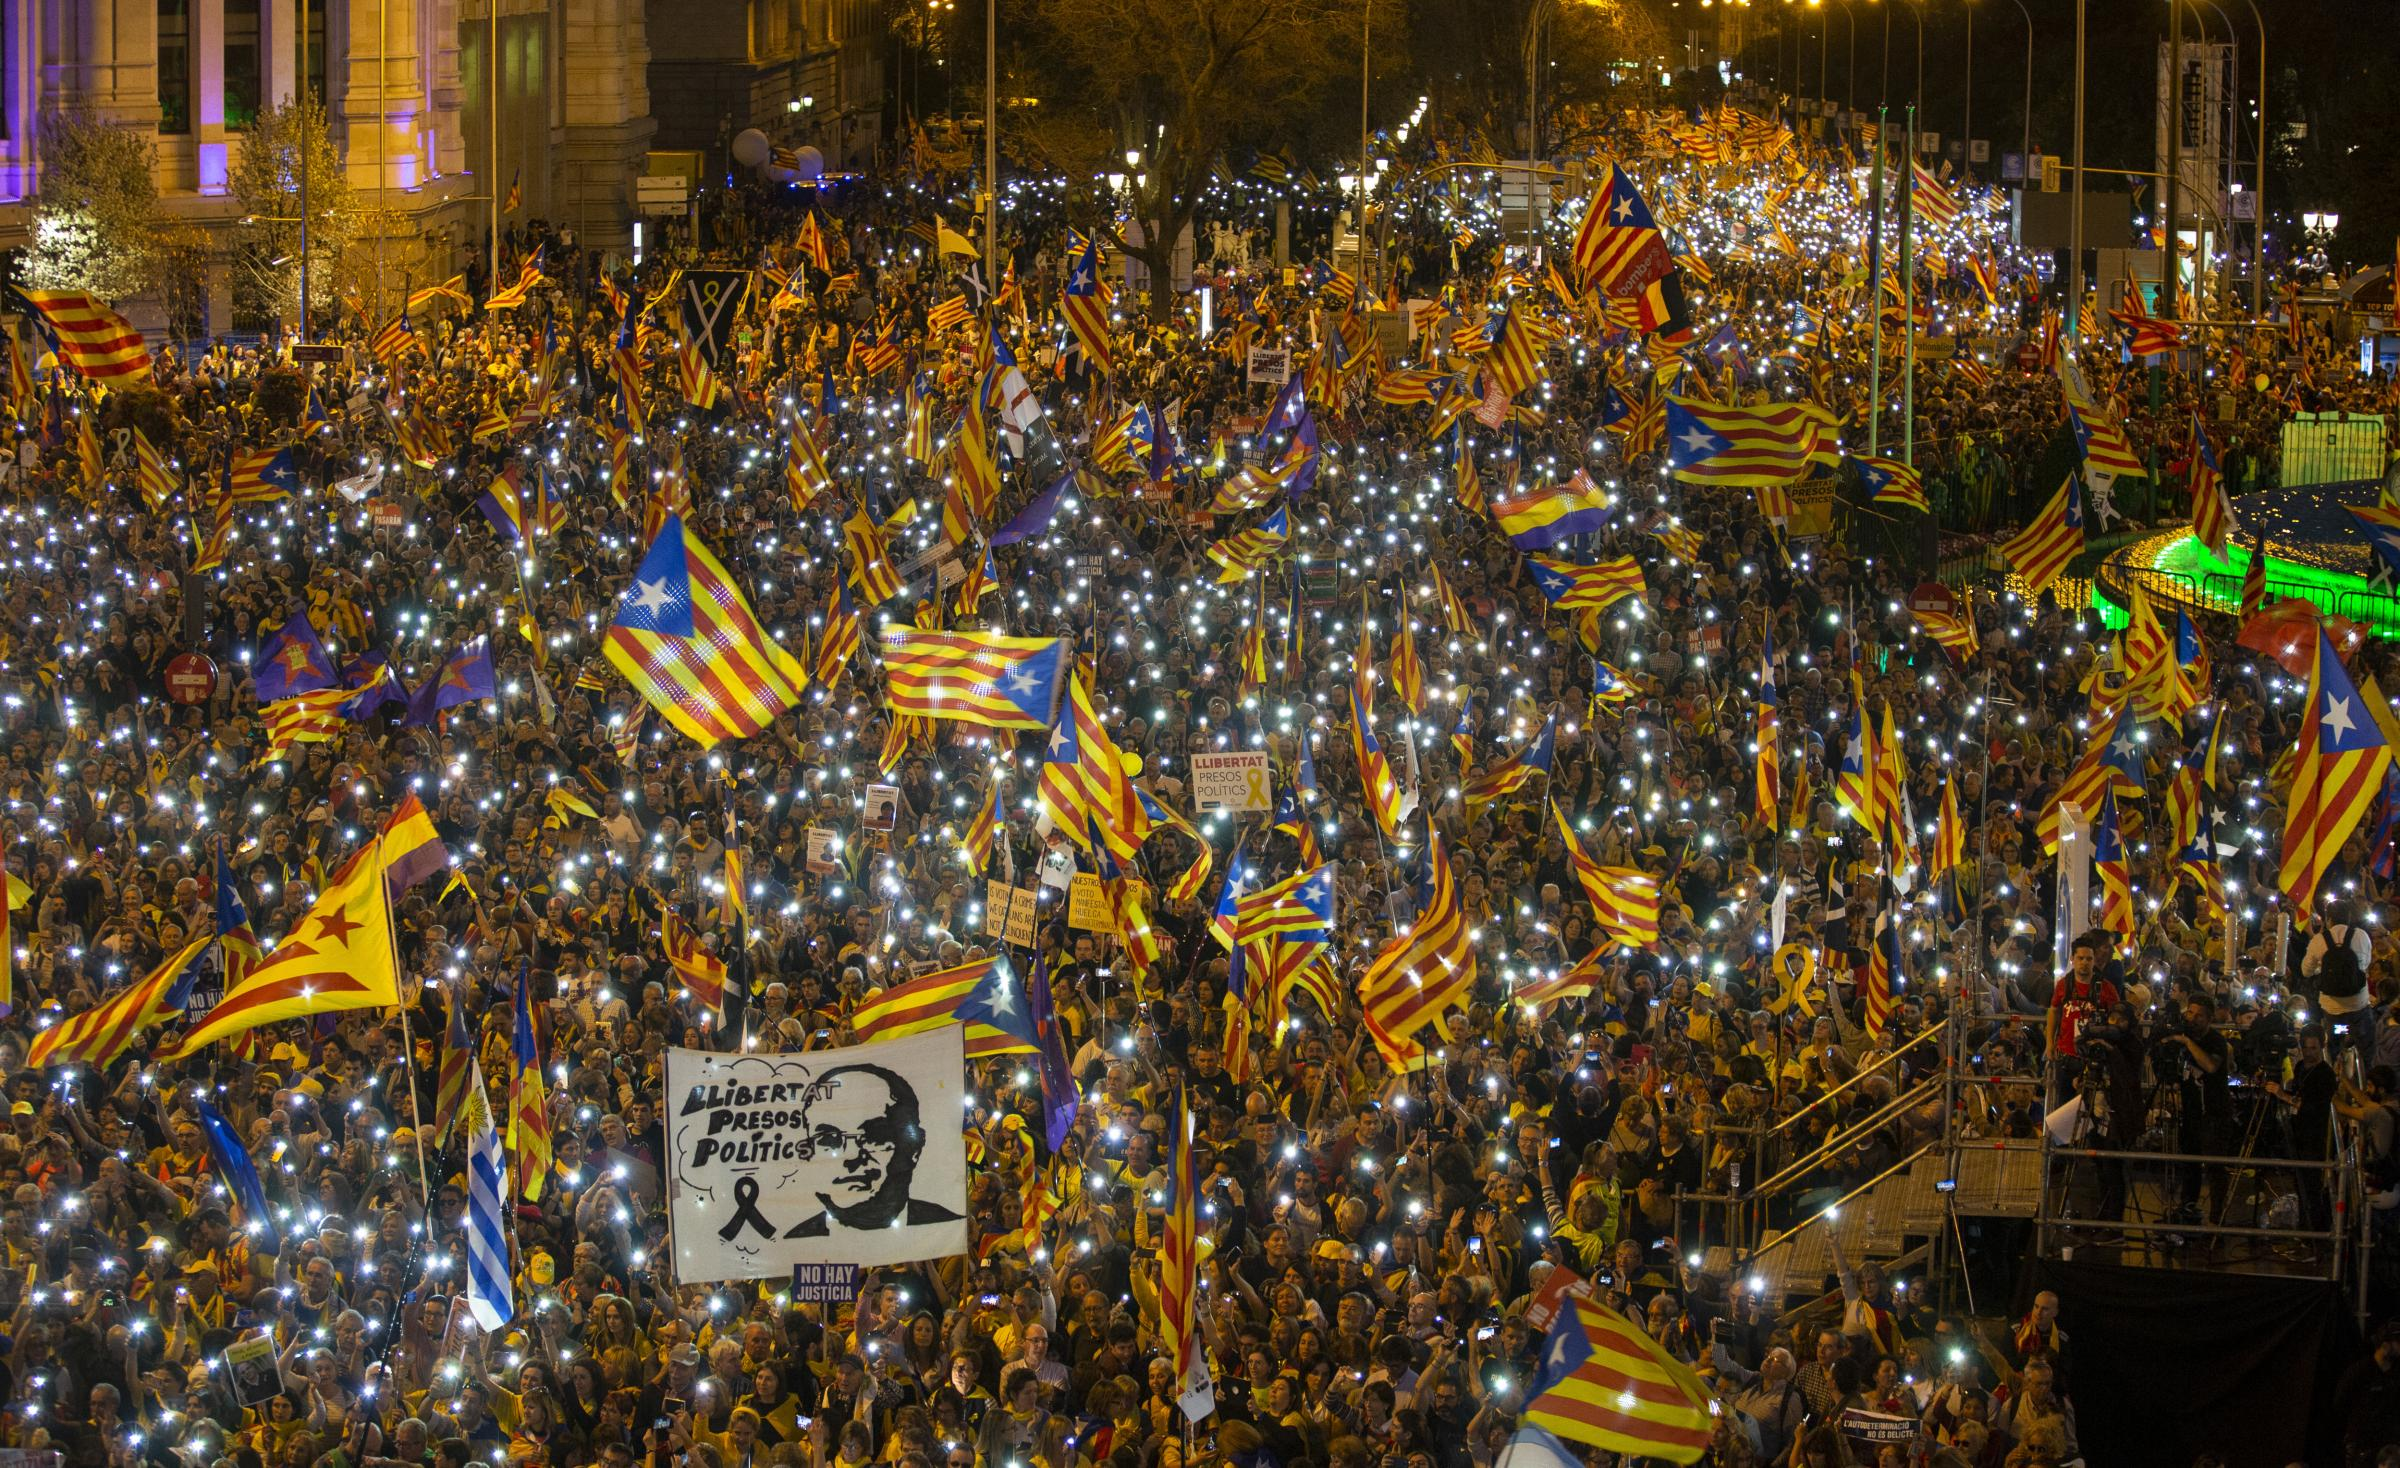 Demonstrators waved Catalan independence flags in Cibeles Square, Madrid, on Saturday night